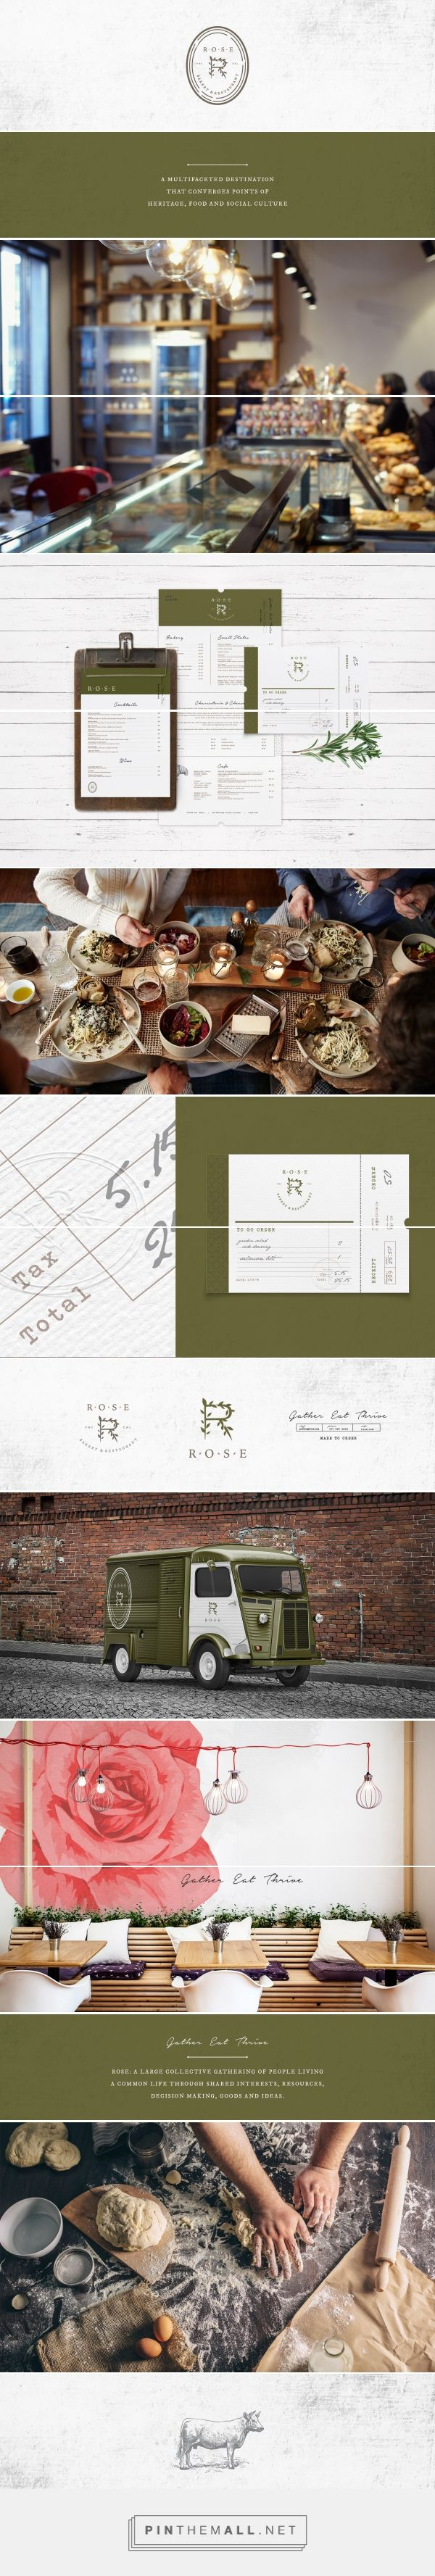 Rose Restaurant Branding and Menu Design by Farm Design | Fivestar Branding Agency – Design and Branding Agency & Inspiration Gallery